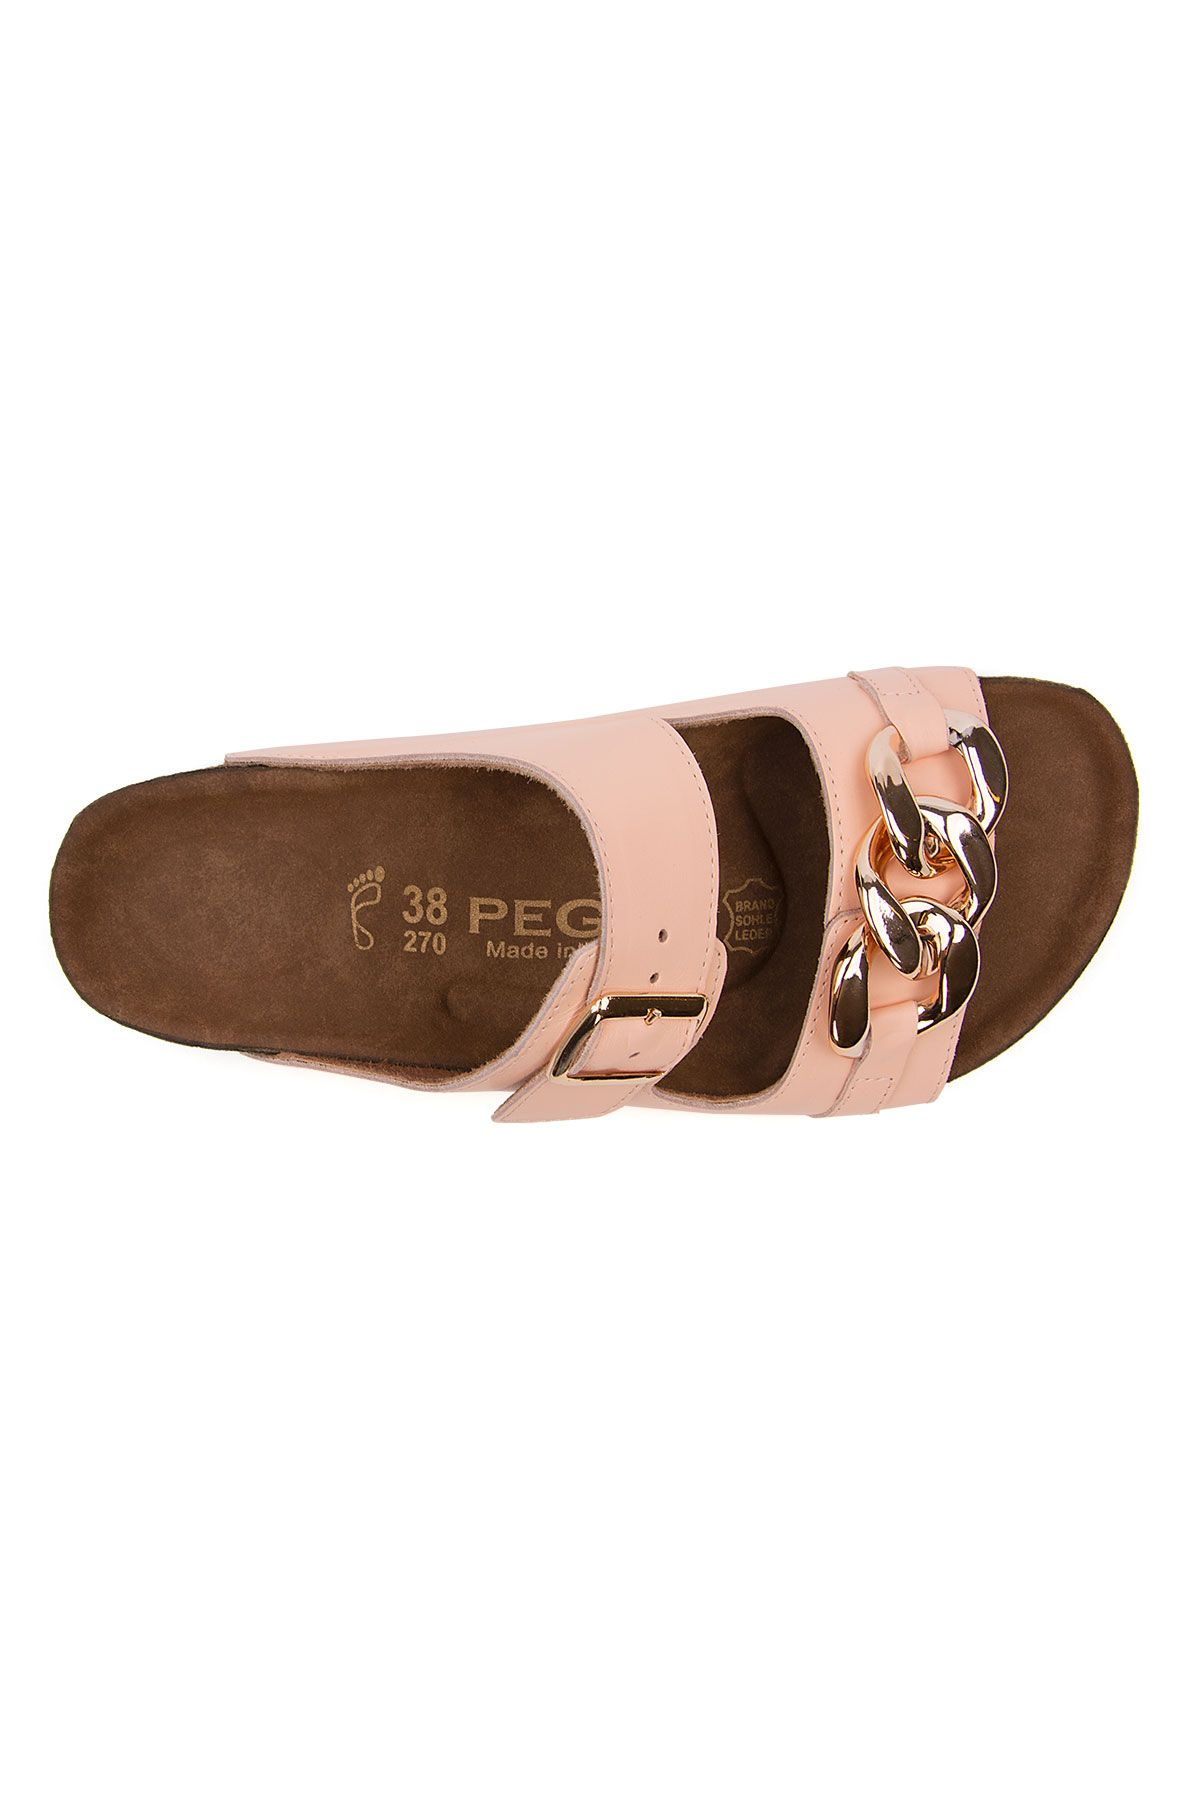 Pegia Women's Chain Detailed Leather Slippers 215532 Powdery